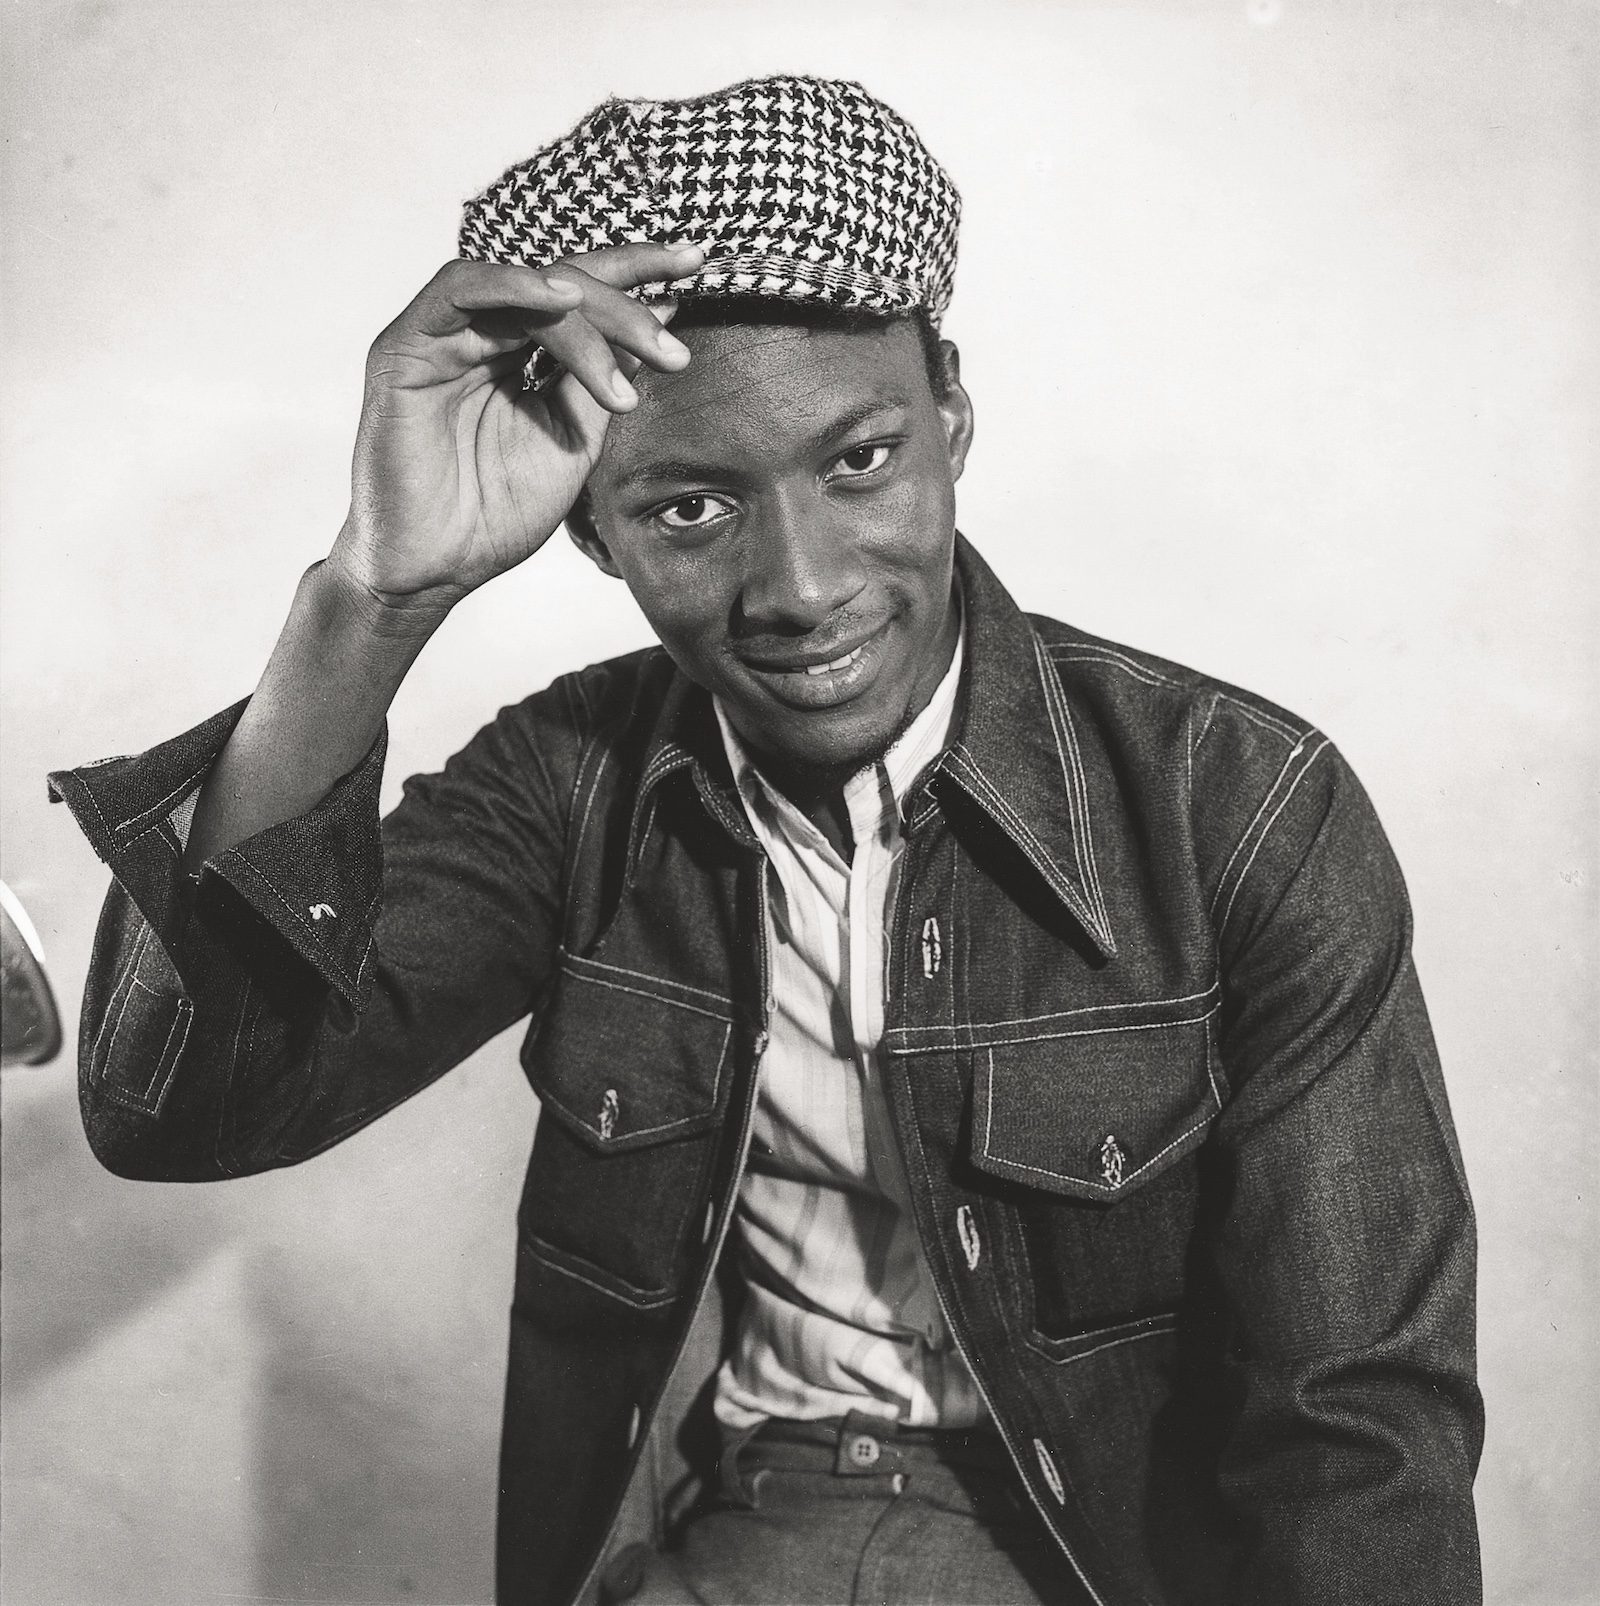 Circa 1972. Collection Fondation Cartier pour l'art contemporain, Paris © Malick Sidibé Extract from Mali Twist (Éditions Xavier Barral, Fondation Cartier pour l'art contemporain, 2017)